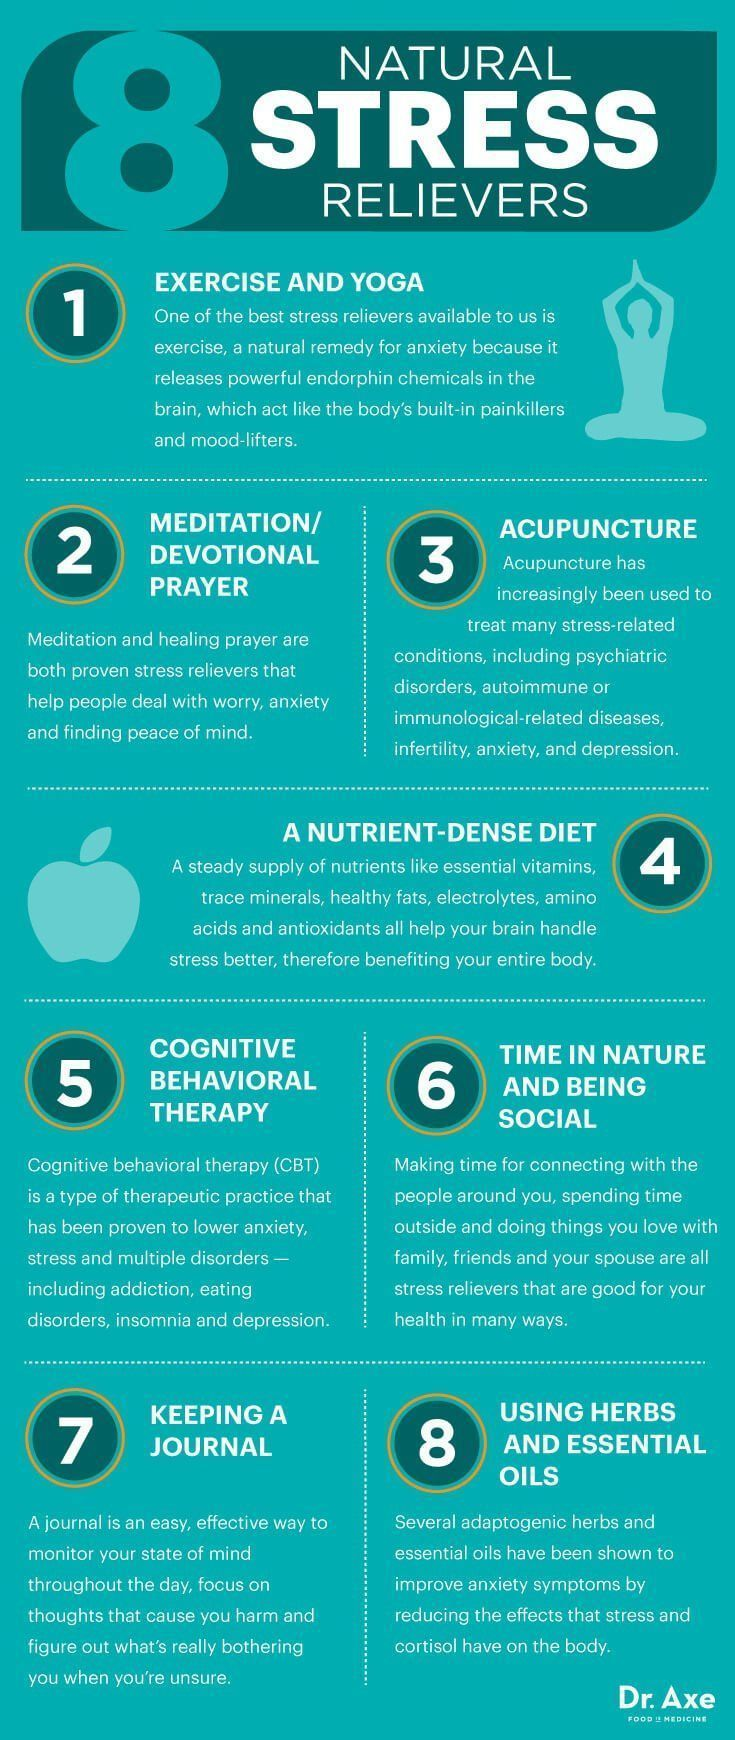 It's just a bad day not a bad life, believe you can relief stress with these natural ways. For this month of march